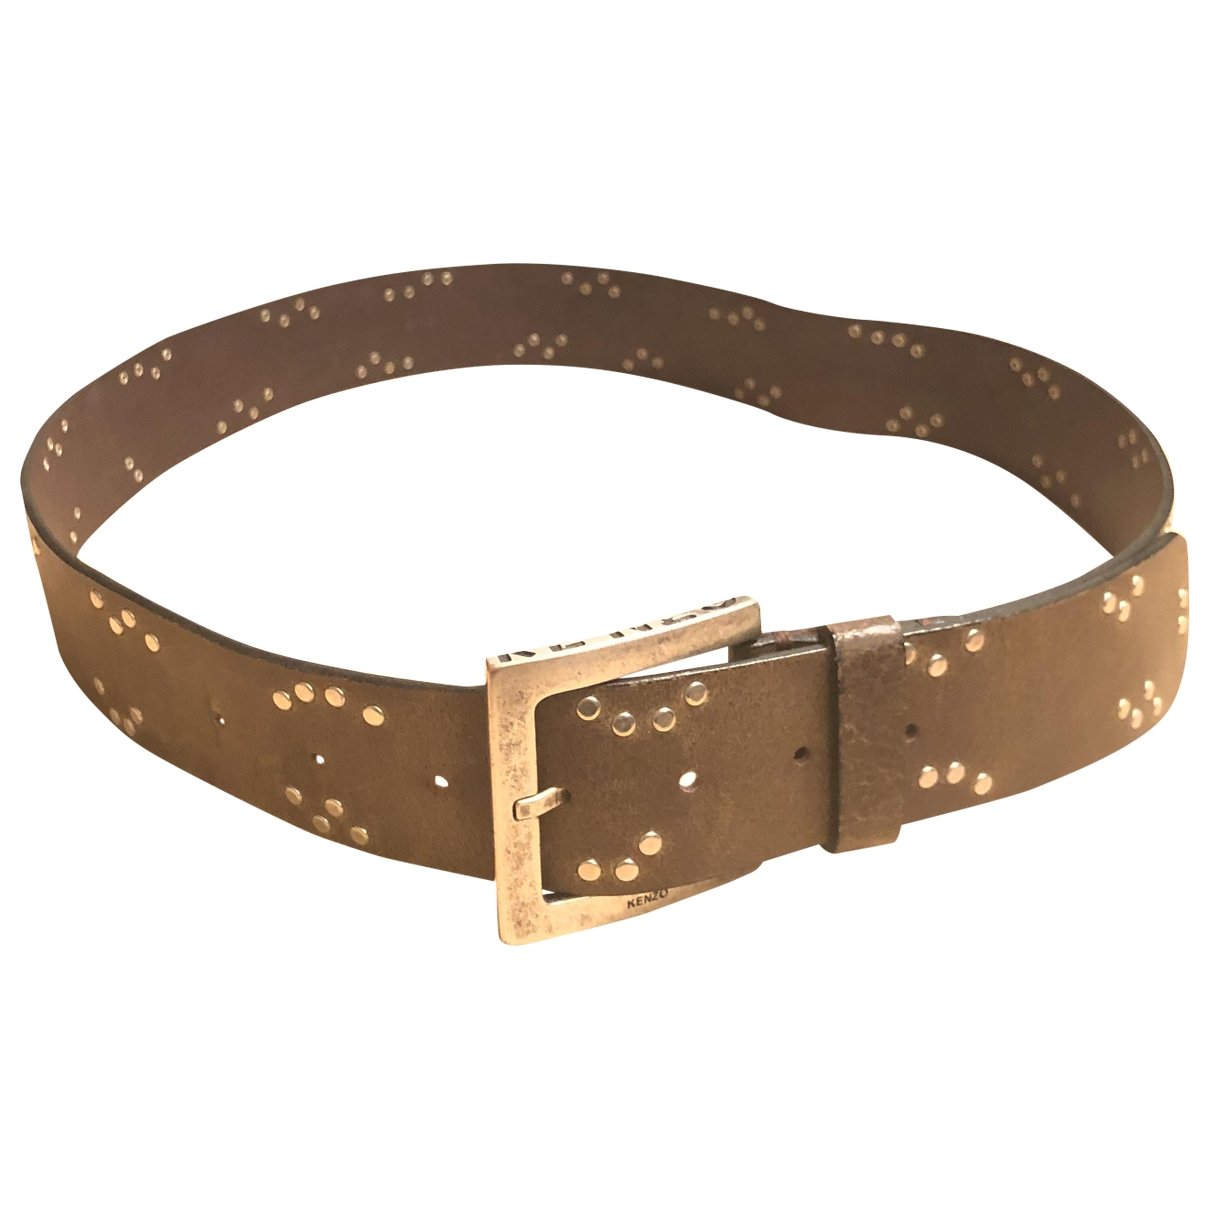 Kenzo \N Brown Leather belt for Men L international